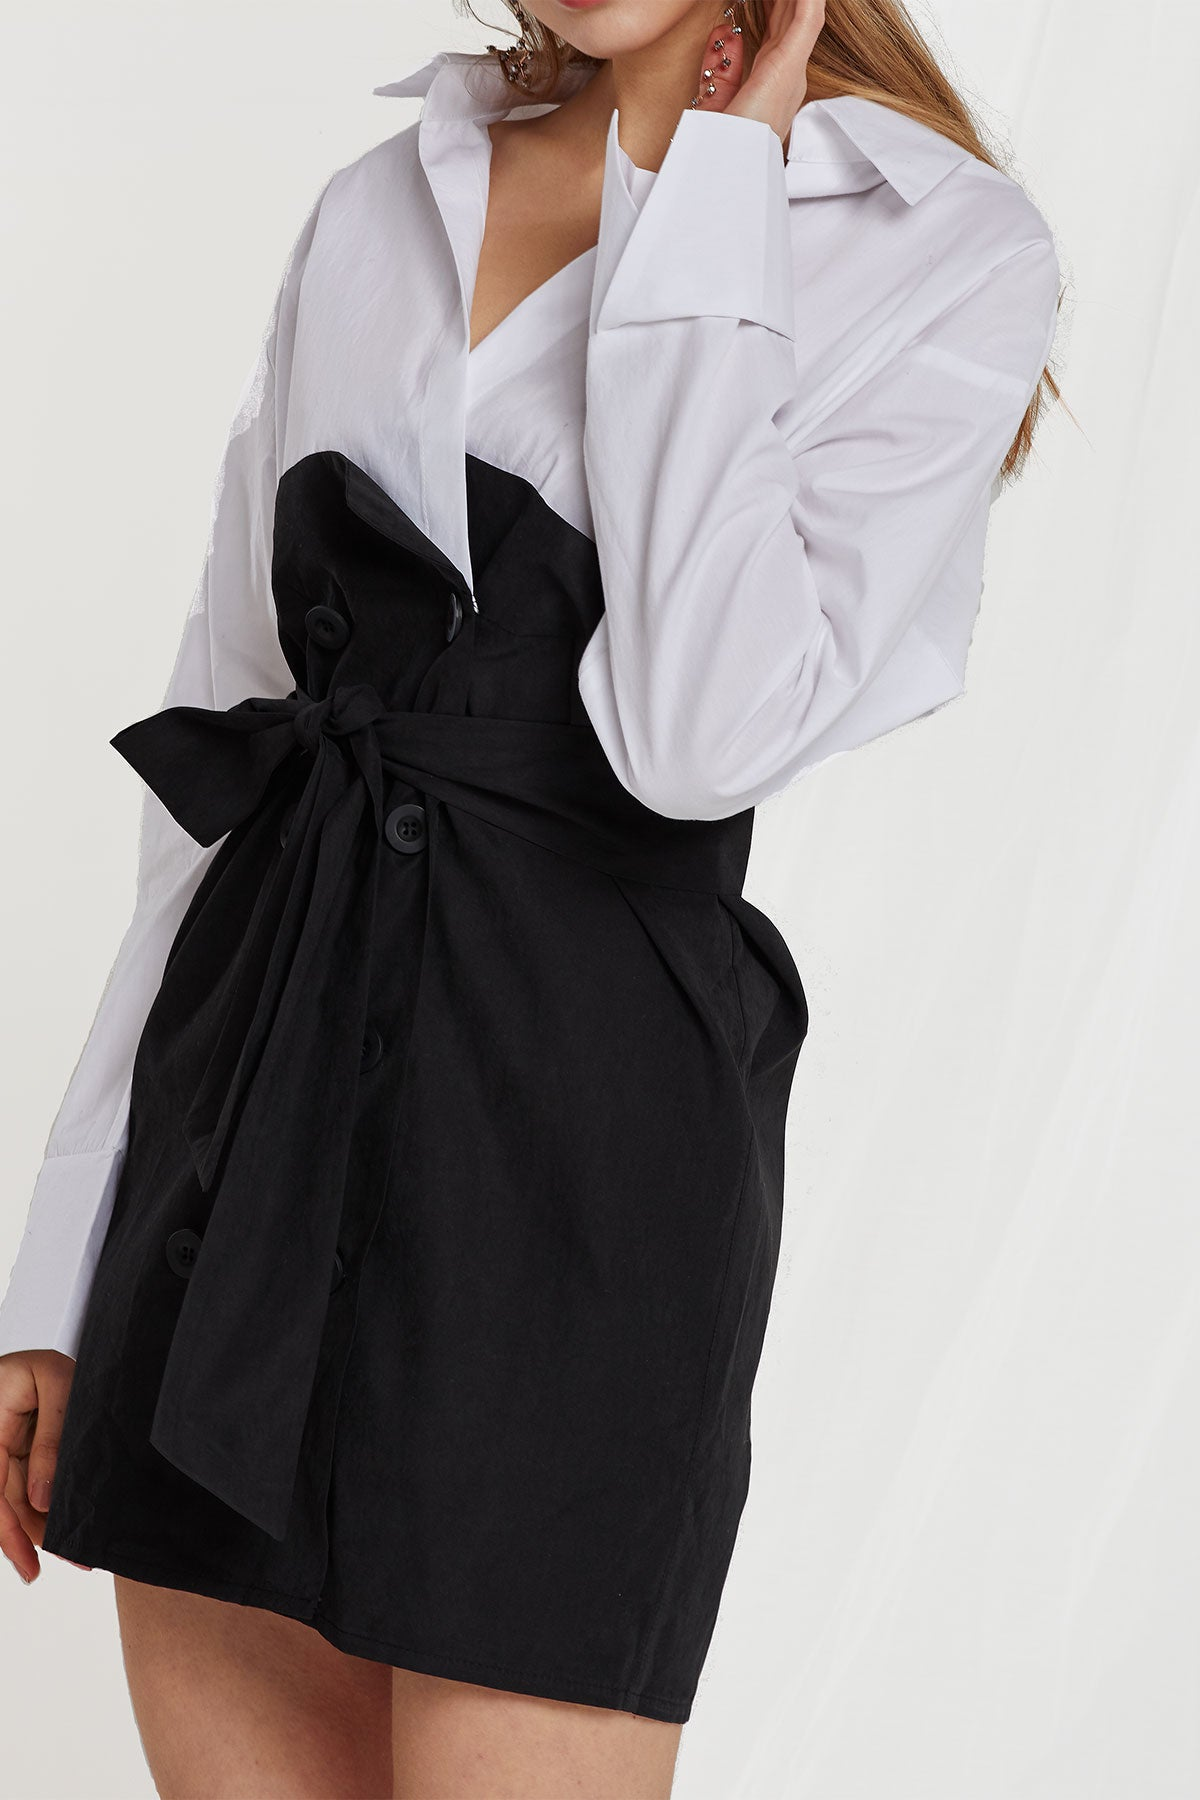 Anastasia Shirt Dress w/ Sash Belt (Pre-Order)